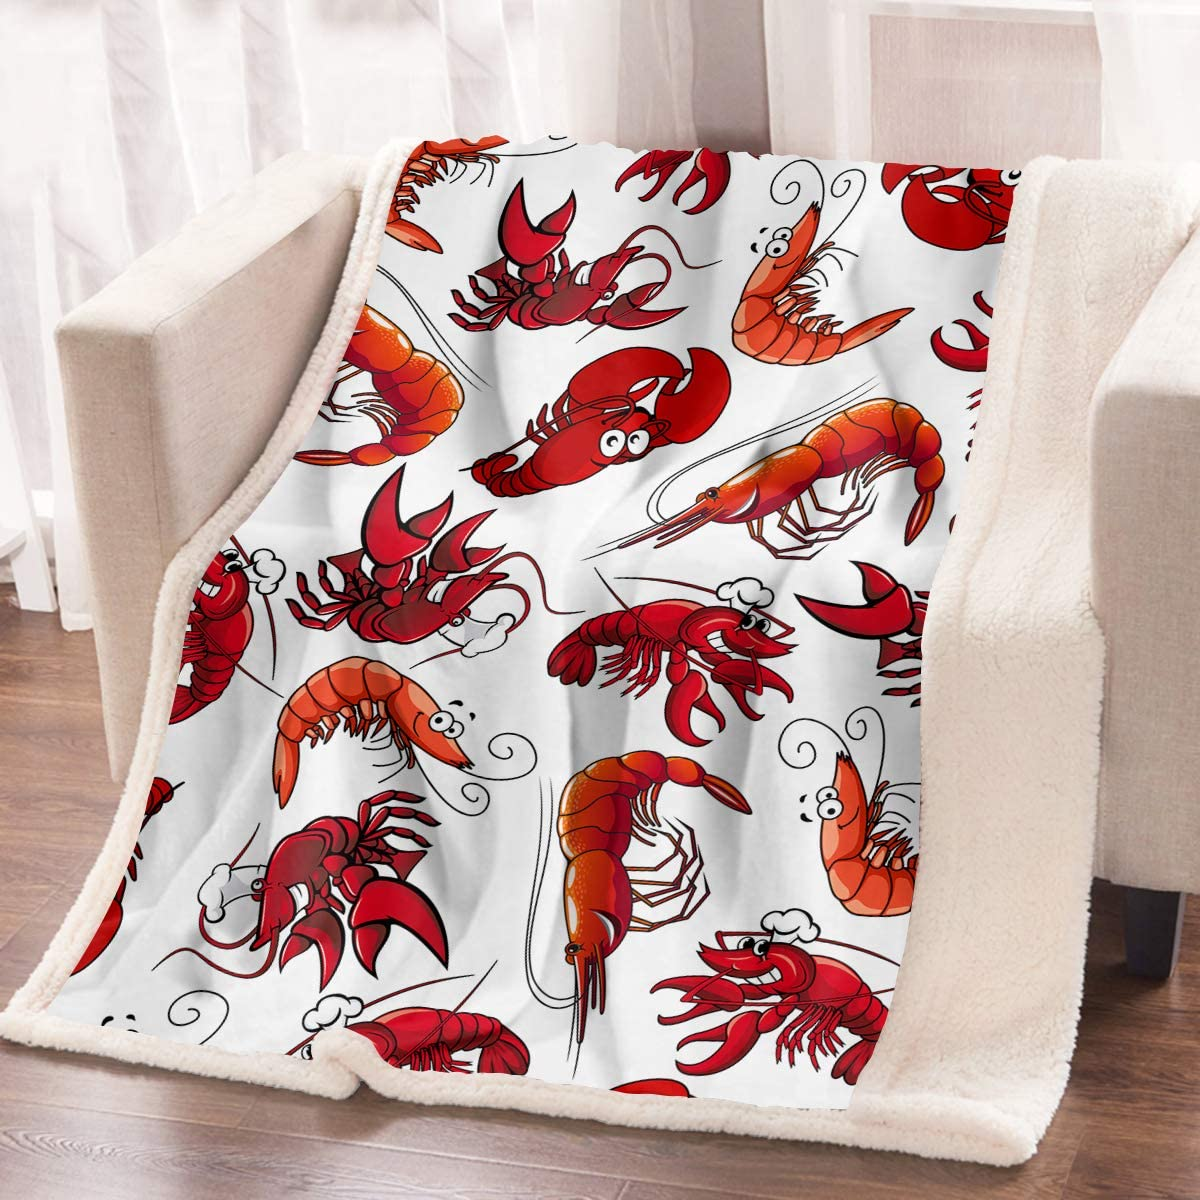 ARIGHTEX Funny Lobster Throw Blanket 3D Crawfish Prawn Red Shrimps Blankets Decorative Marine Seafood Fleece Blanket for Kids Adult Teen (60 x 80 Inches)